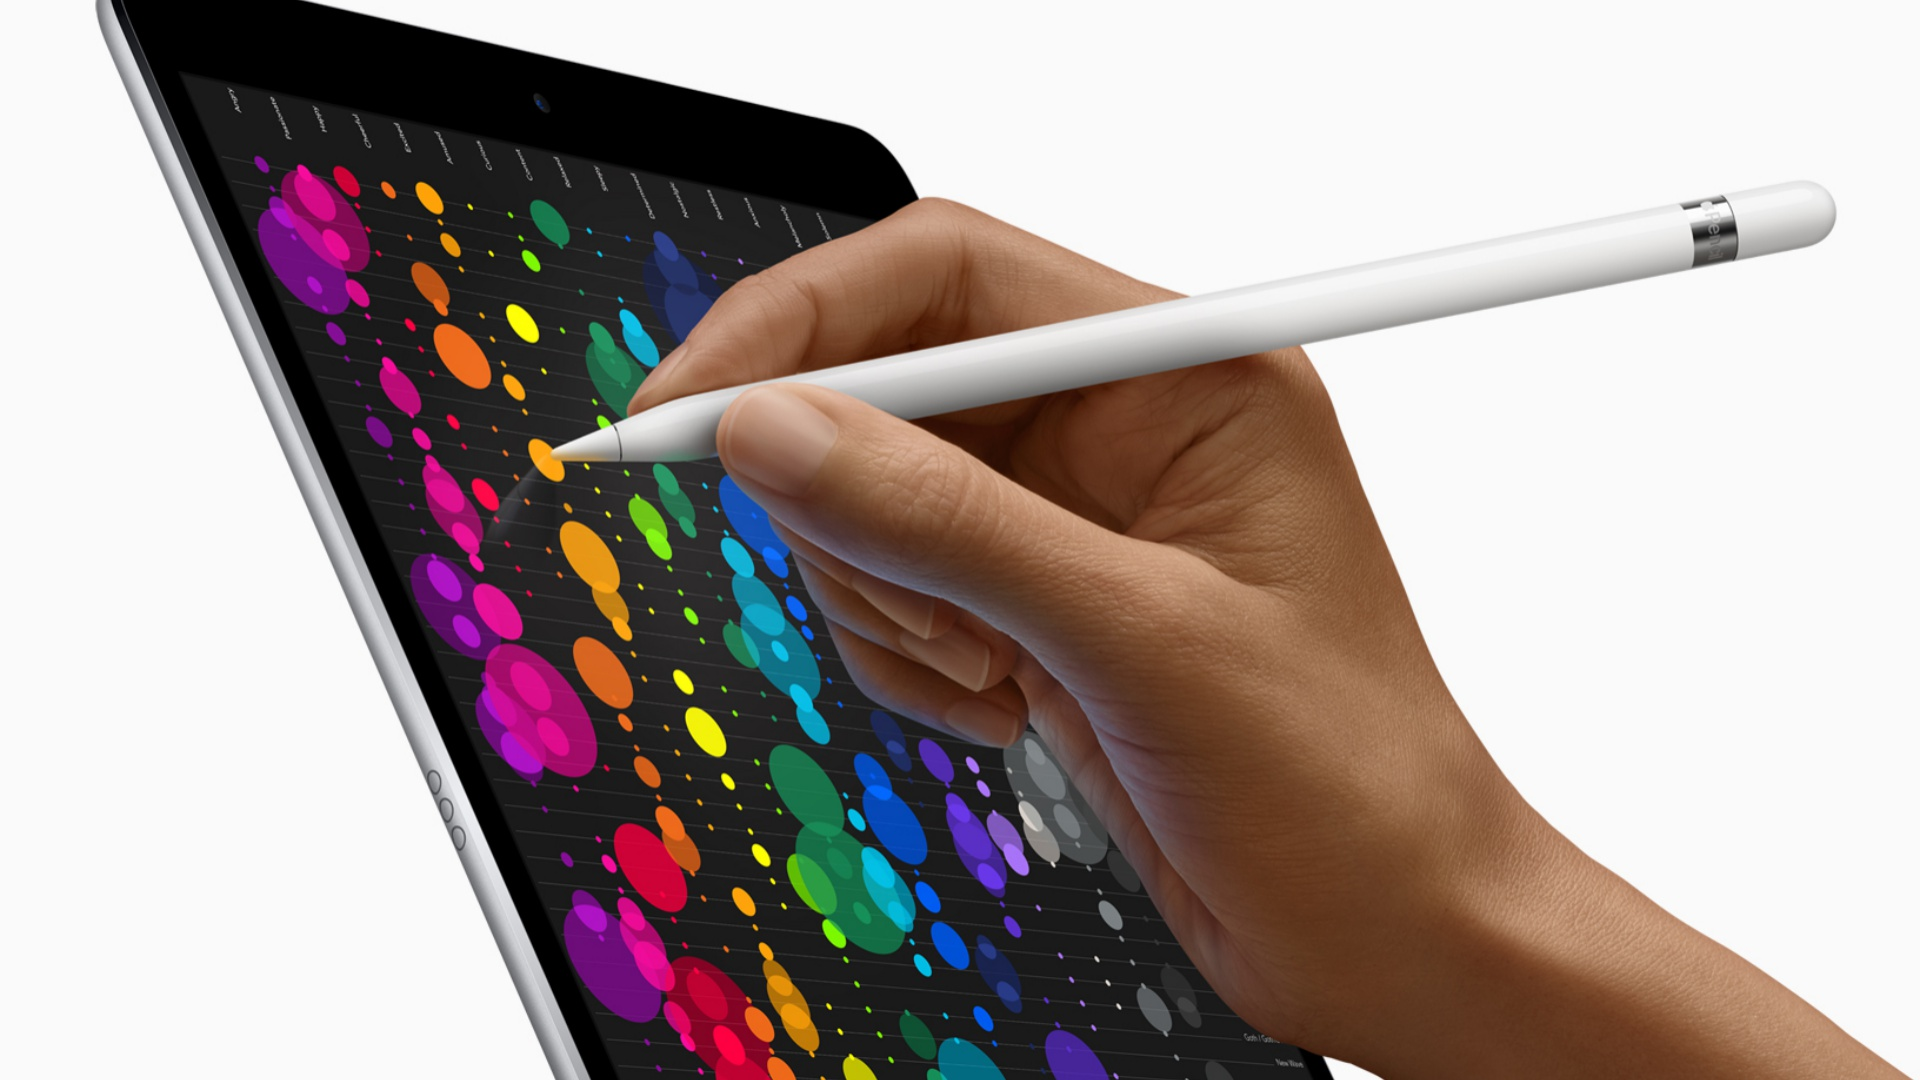 Adobe said to have full iPad version of Photoshop in the